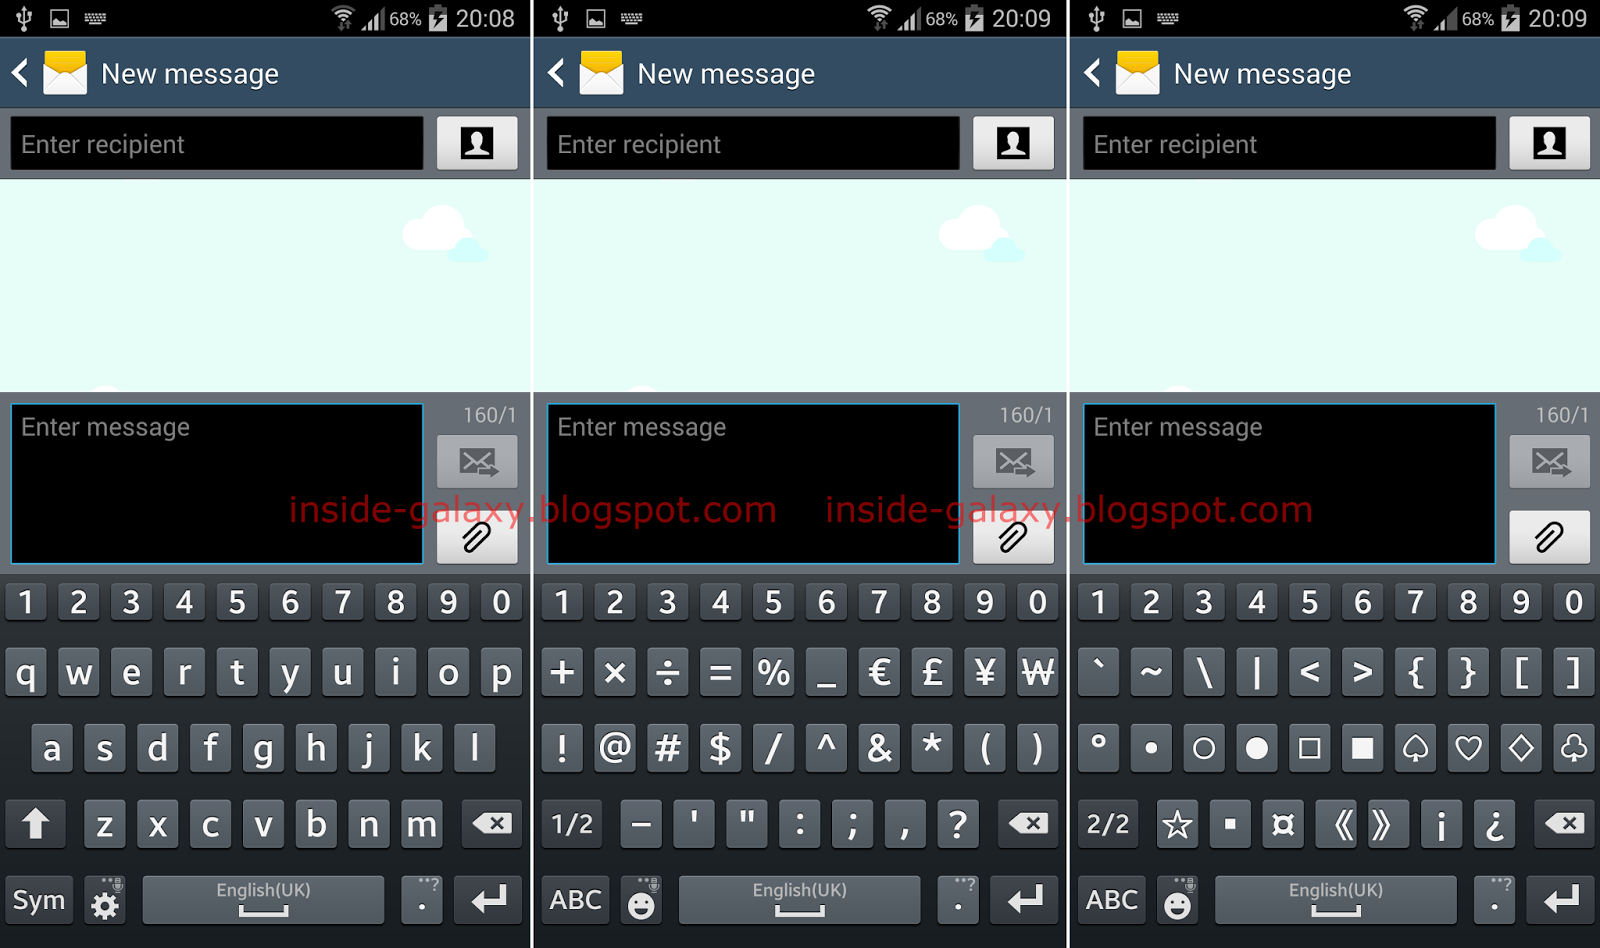 Samsung galaxy s4 how to use samsung virtual keyboard in android fyi i wrote these steps using the stock qwerty samsung keyboard in the messaging app so you may see a different keyboard buycottarizona